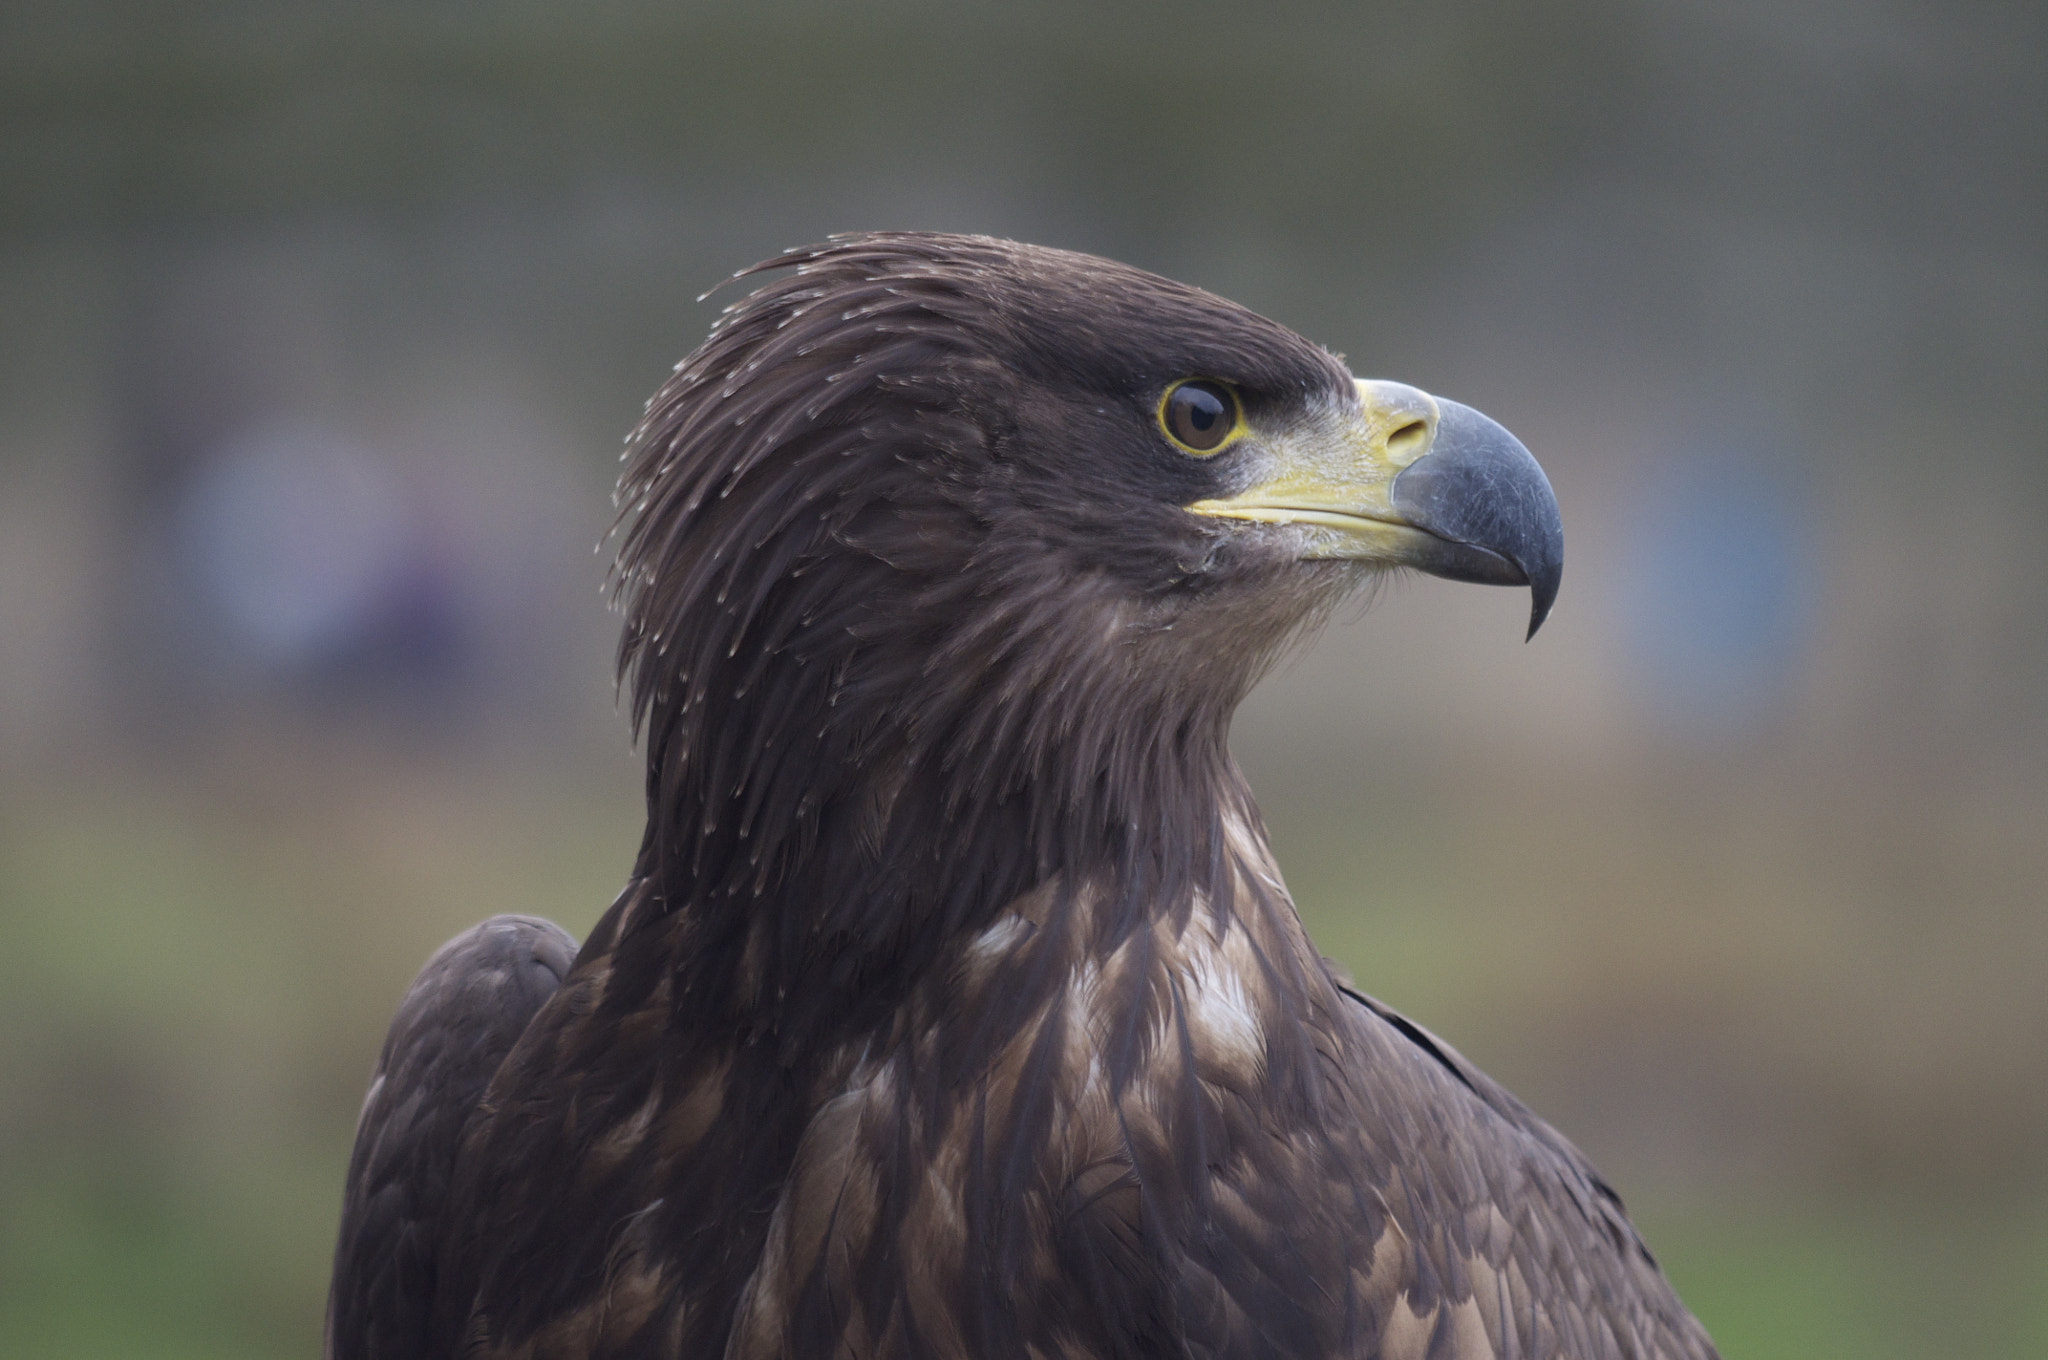 Photograph eagle by Michael Xornot on 500px